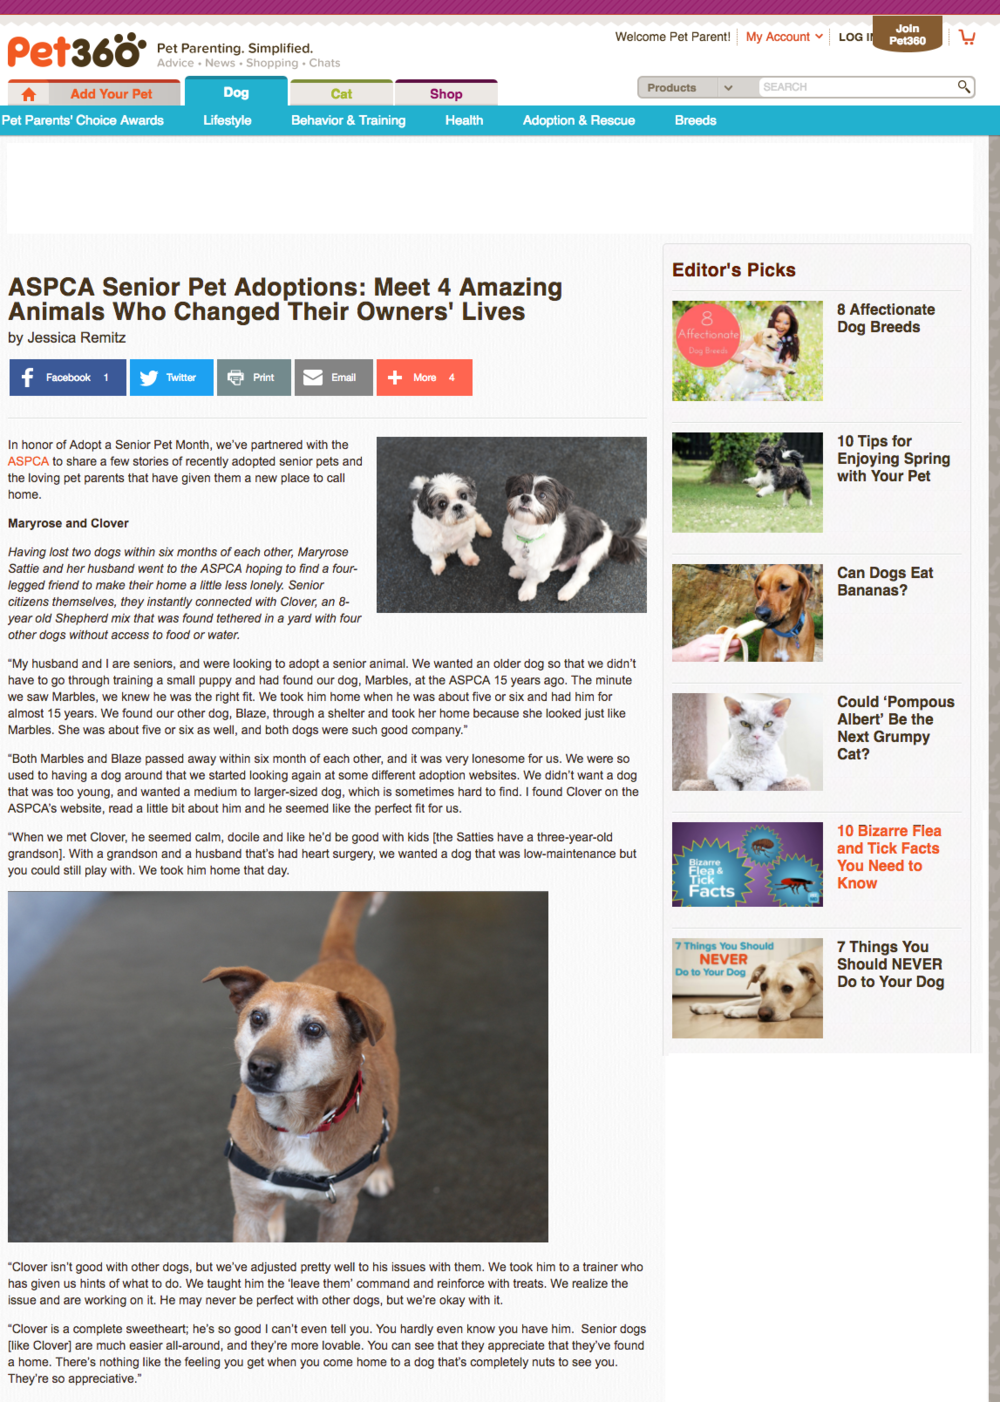 ASCPA Senior Pet Adoptions_Pet360 copy.png